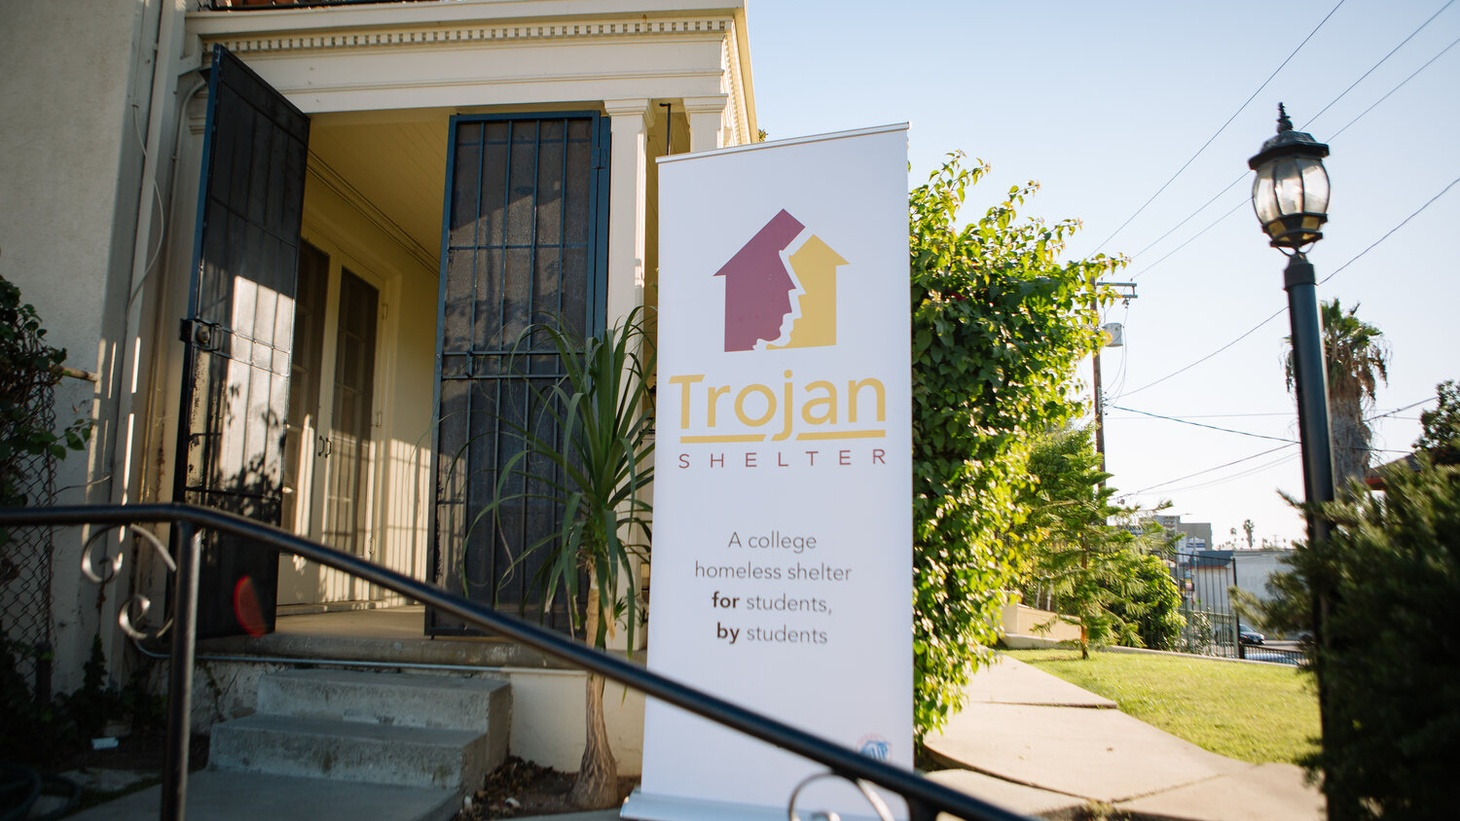 Trojan Shelter is one of the first shelters in the U.S. for unhoused college students.